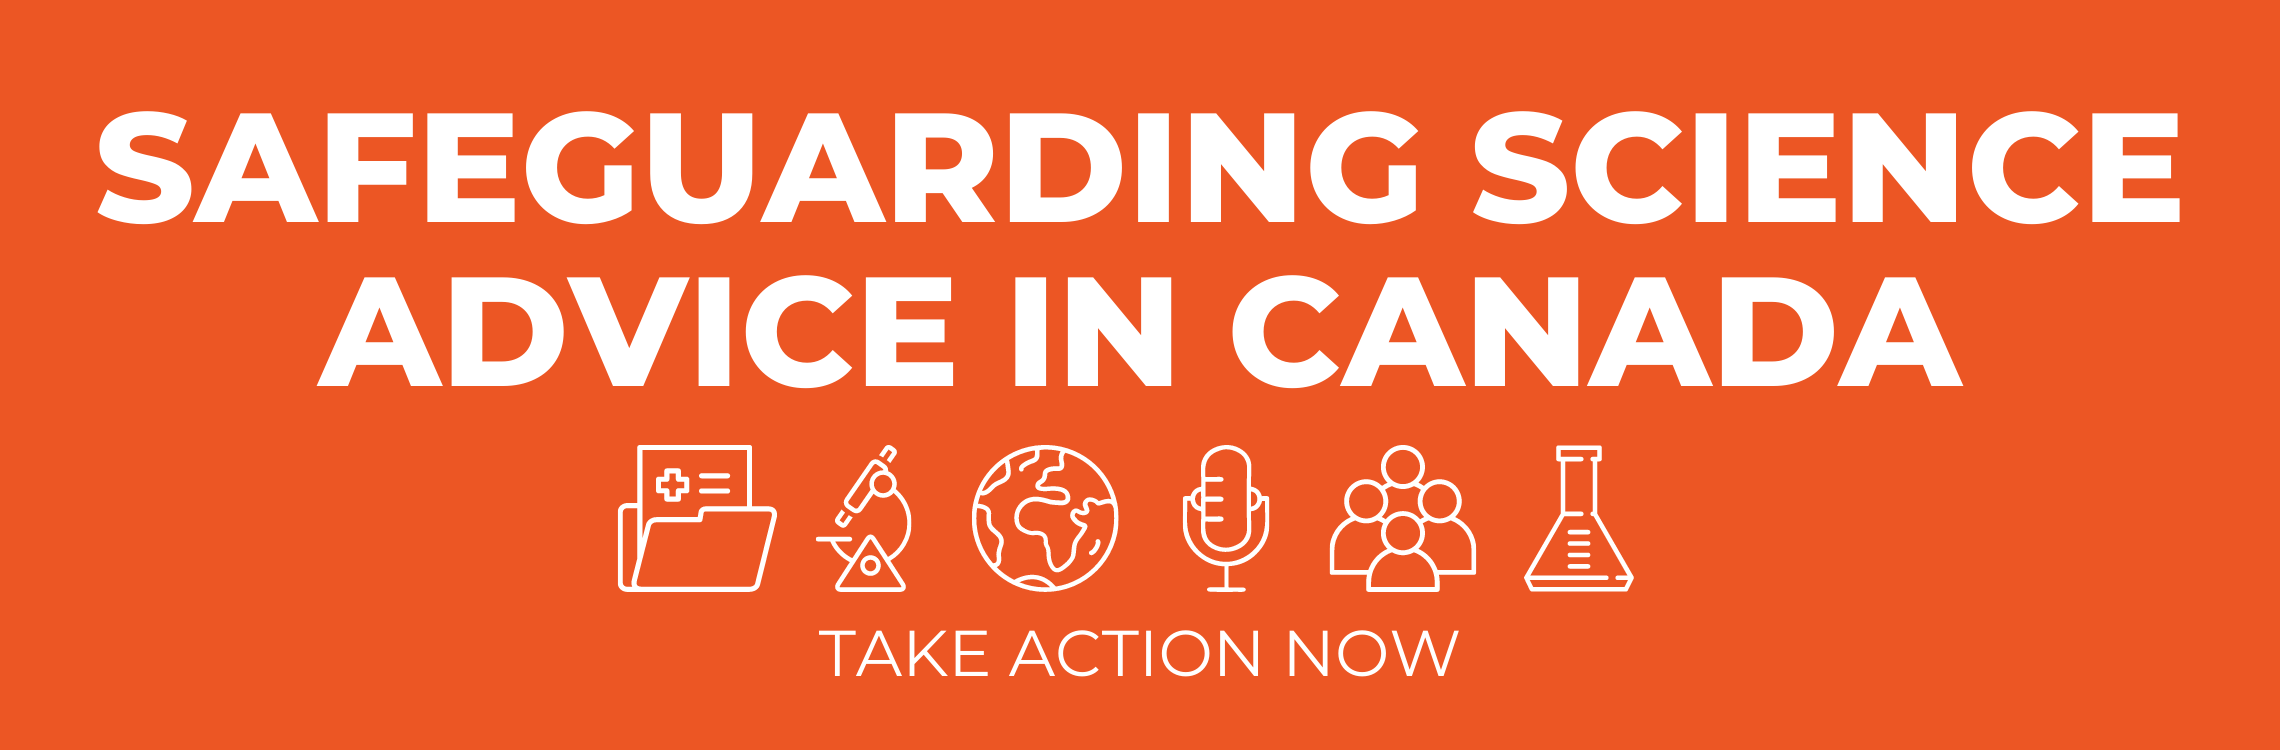 "The words ""Safeguarding Science Advice in Canada"" in large block letters above six white icons of a medical file, a microscope, a globe, a microphone, a group of people, and a beaker. Below those symbols are the words ""take action now"" . All the text and icons are white displayed on an orange background."